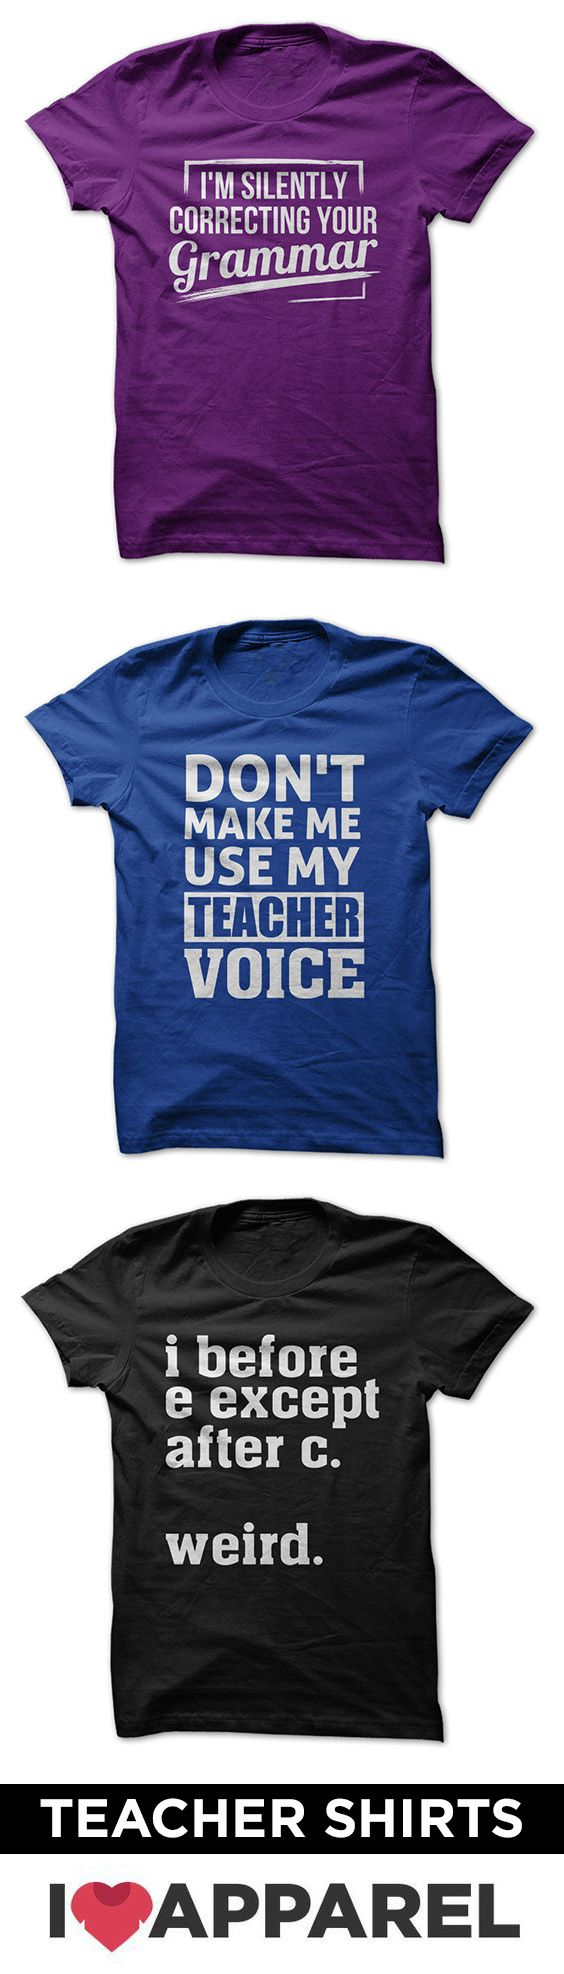 Design your own t shirt lesson plan - Find This Pin And More On Teacher S Ideas Teacher T Shirts And Hoodies